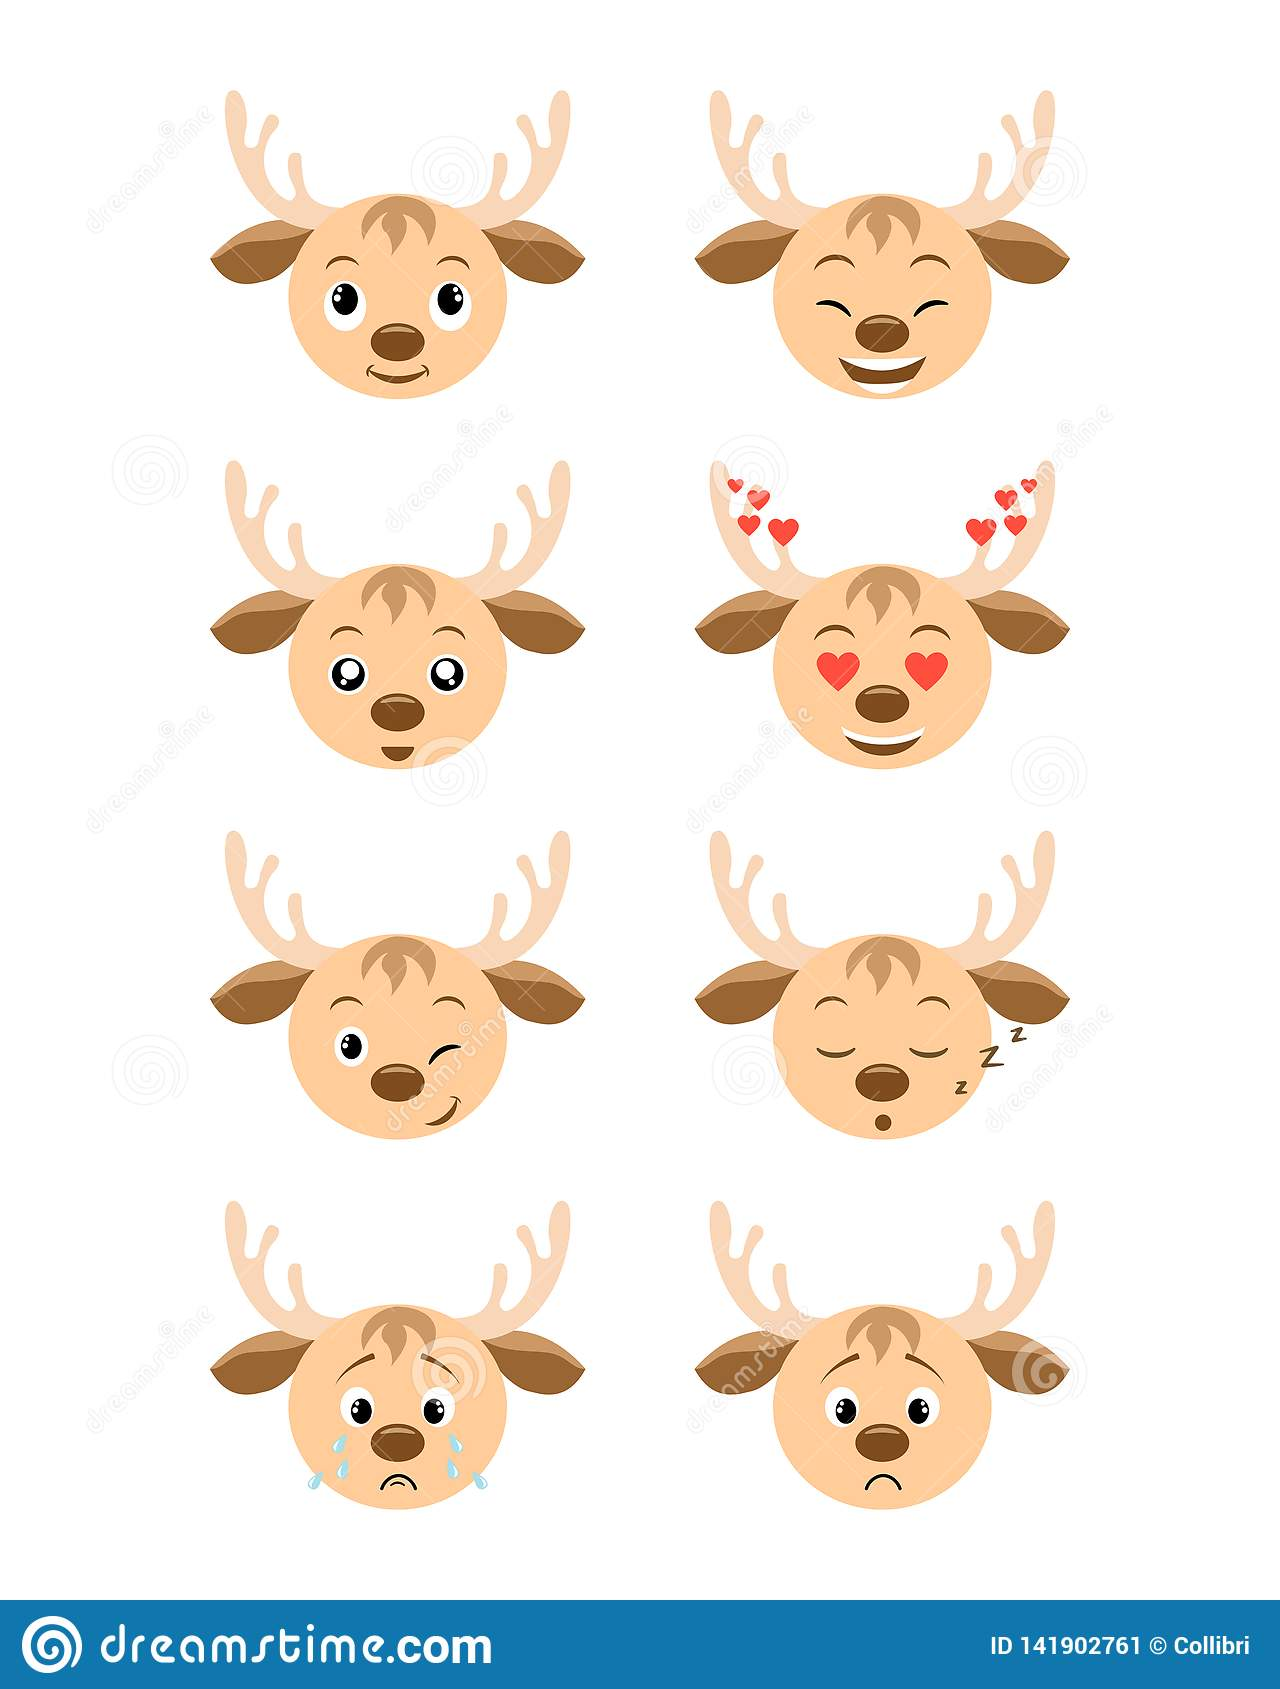 Cartoon deer emotions set. Smiling, bored, enamored, sleepy, sad, crying and other deer`s emotions collection.